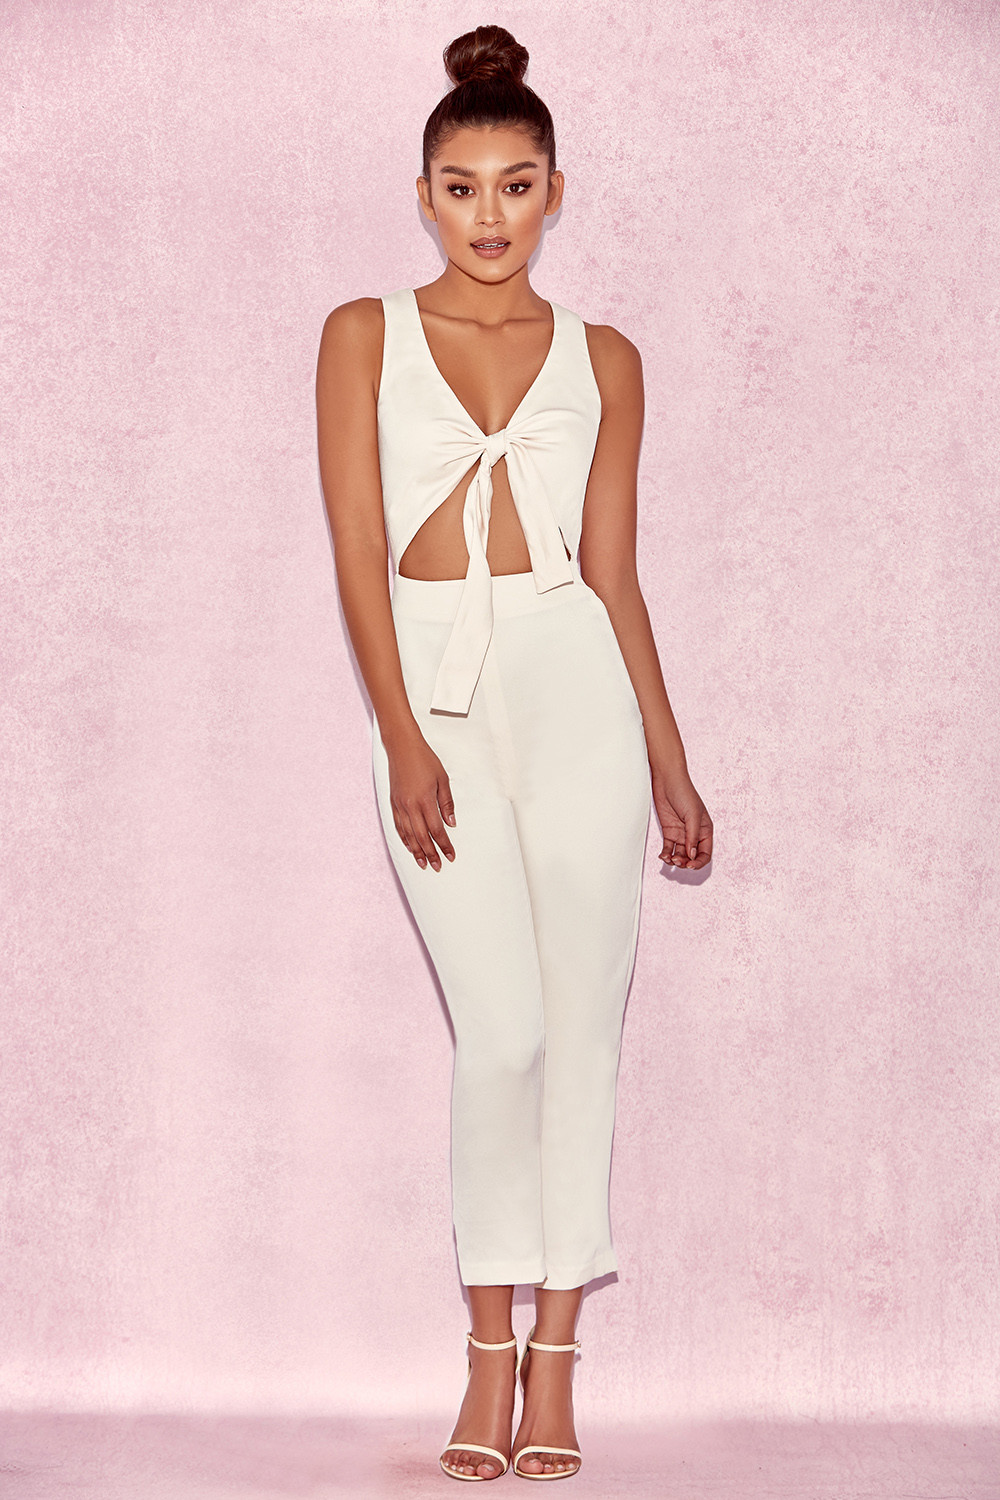 96dc98b9c5c Goya Cream Crepe Knotted Front Jumpsuit. View larger image. View larger  image